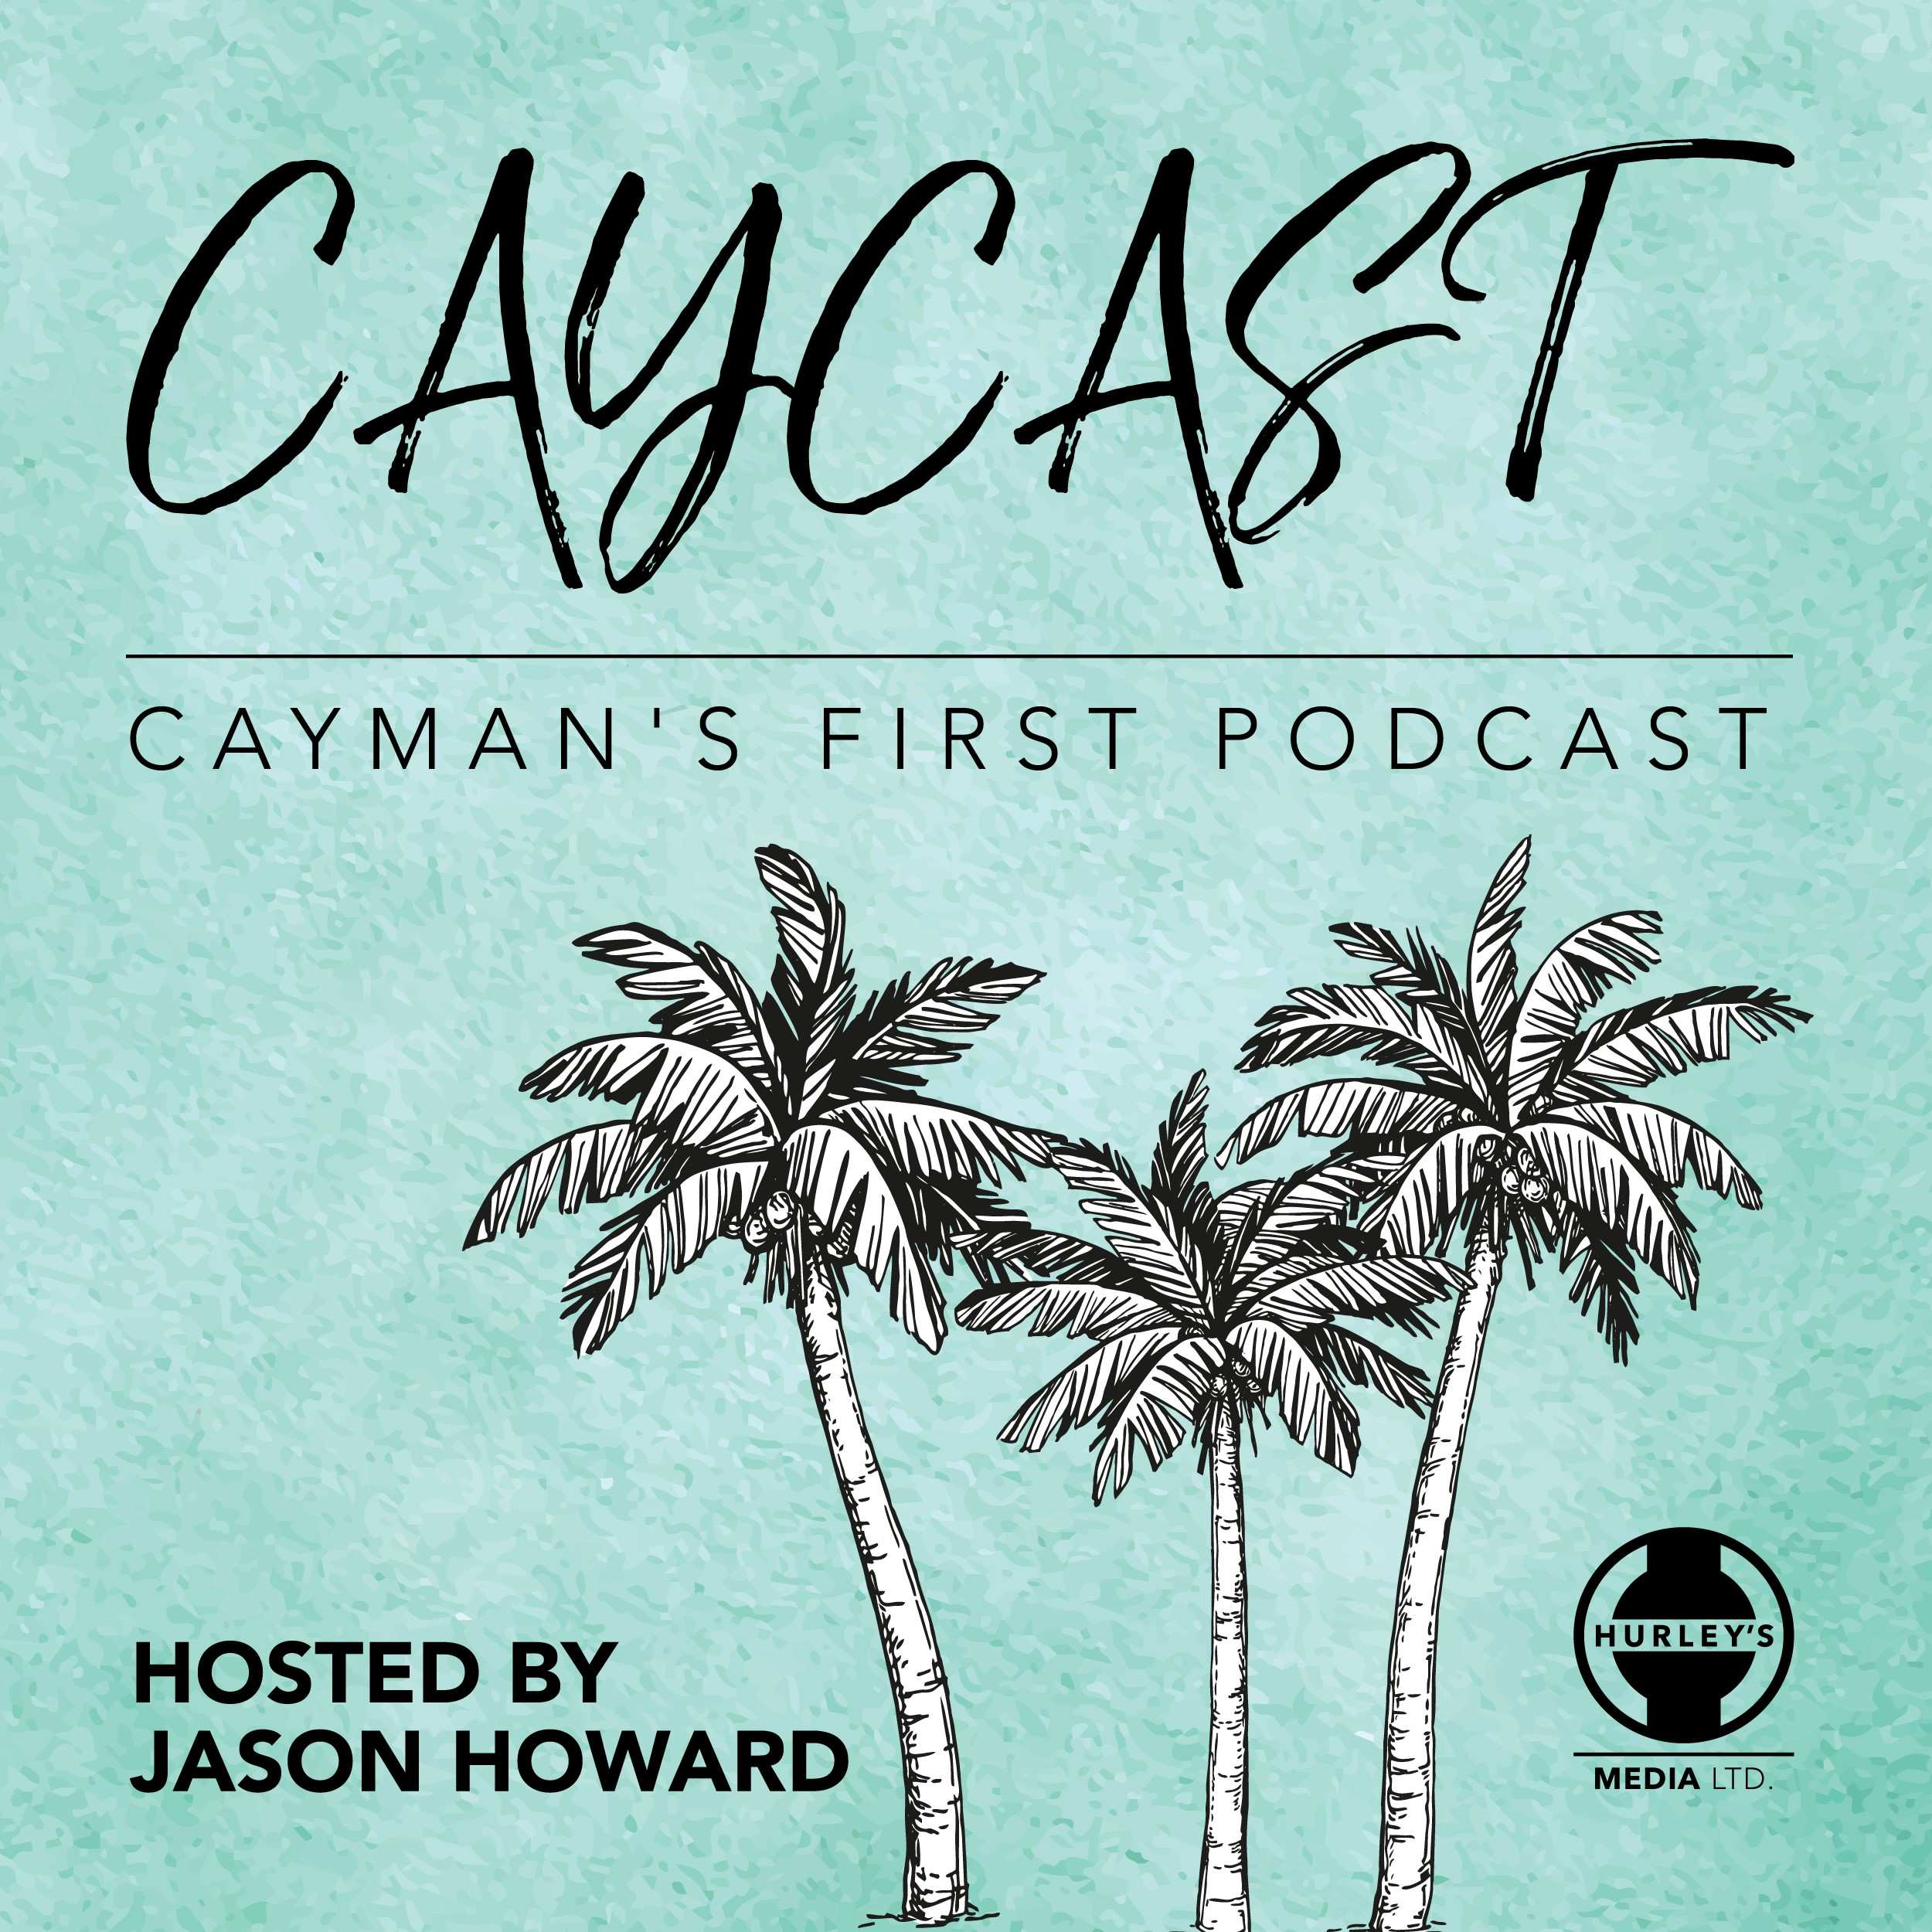 Caycast - The Cayman Islands Podcast